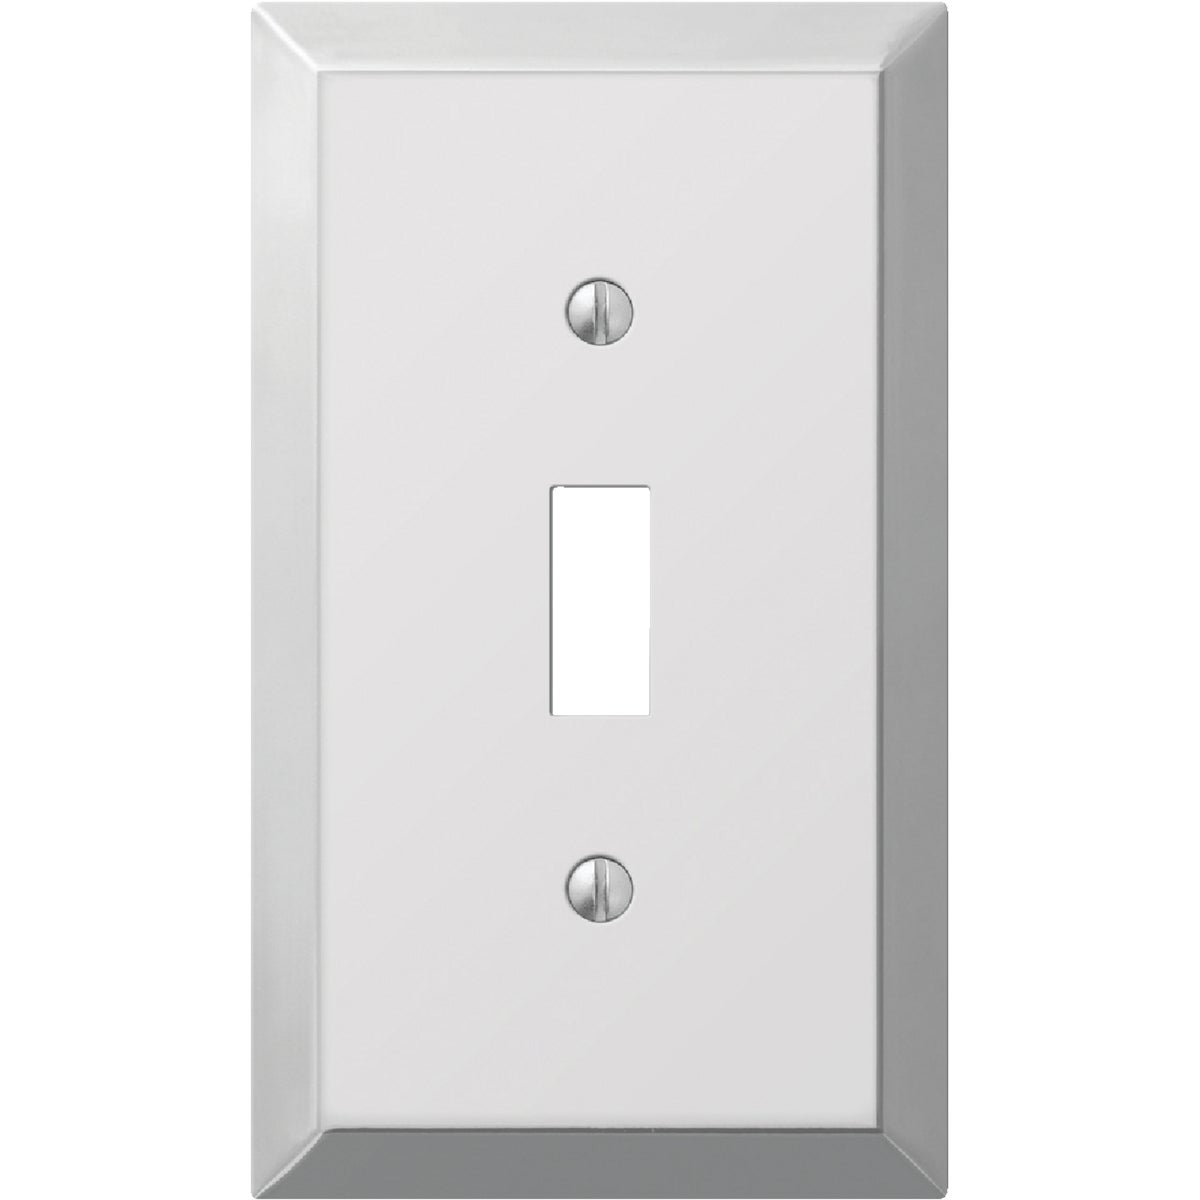 CHR 1-TOGGLE WALL PLATE